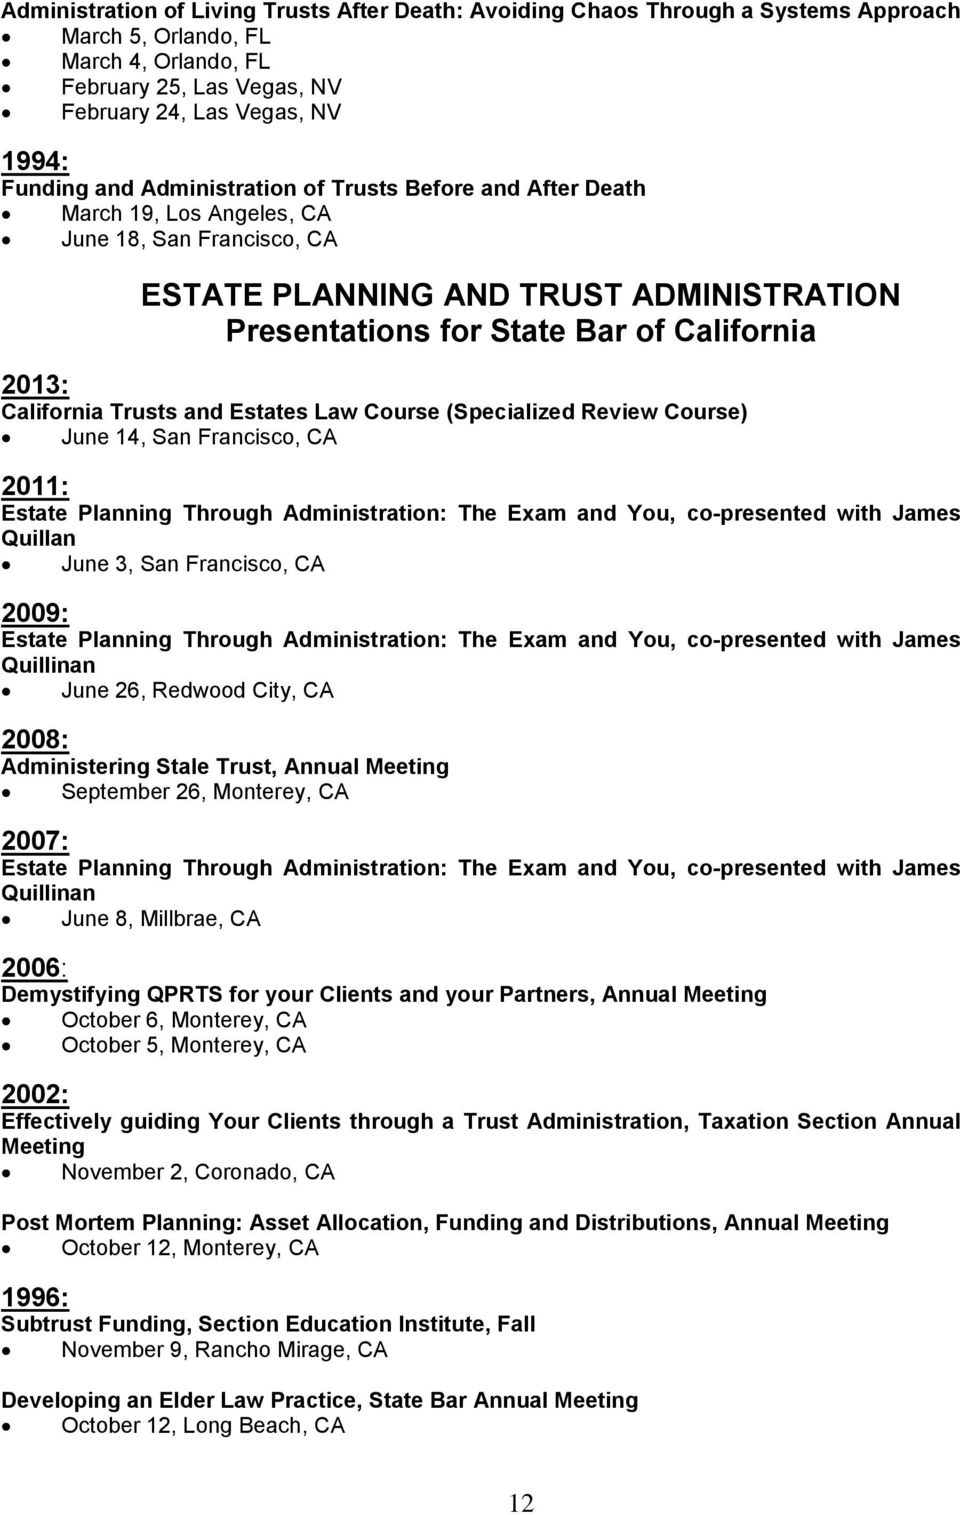 California Trusts and Estates Law Course (Specialized Review Course) June 14, San Francisco, CA 2011: Estate Planning Through Administration: The Exam and You, co-presented with James Quillan June 3,